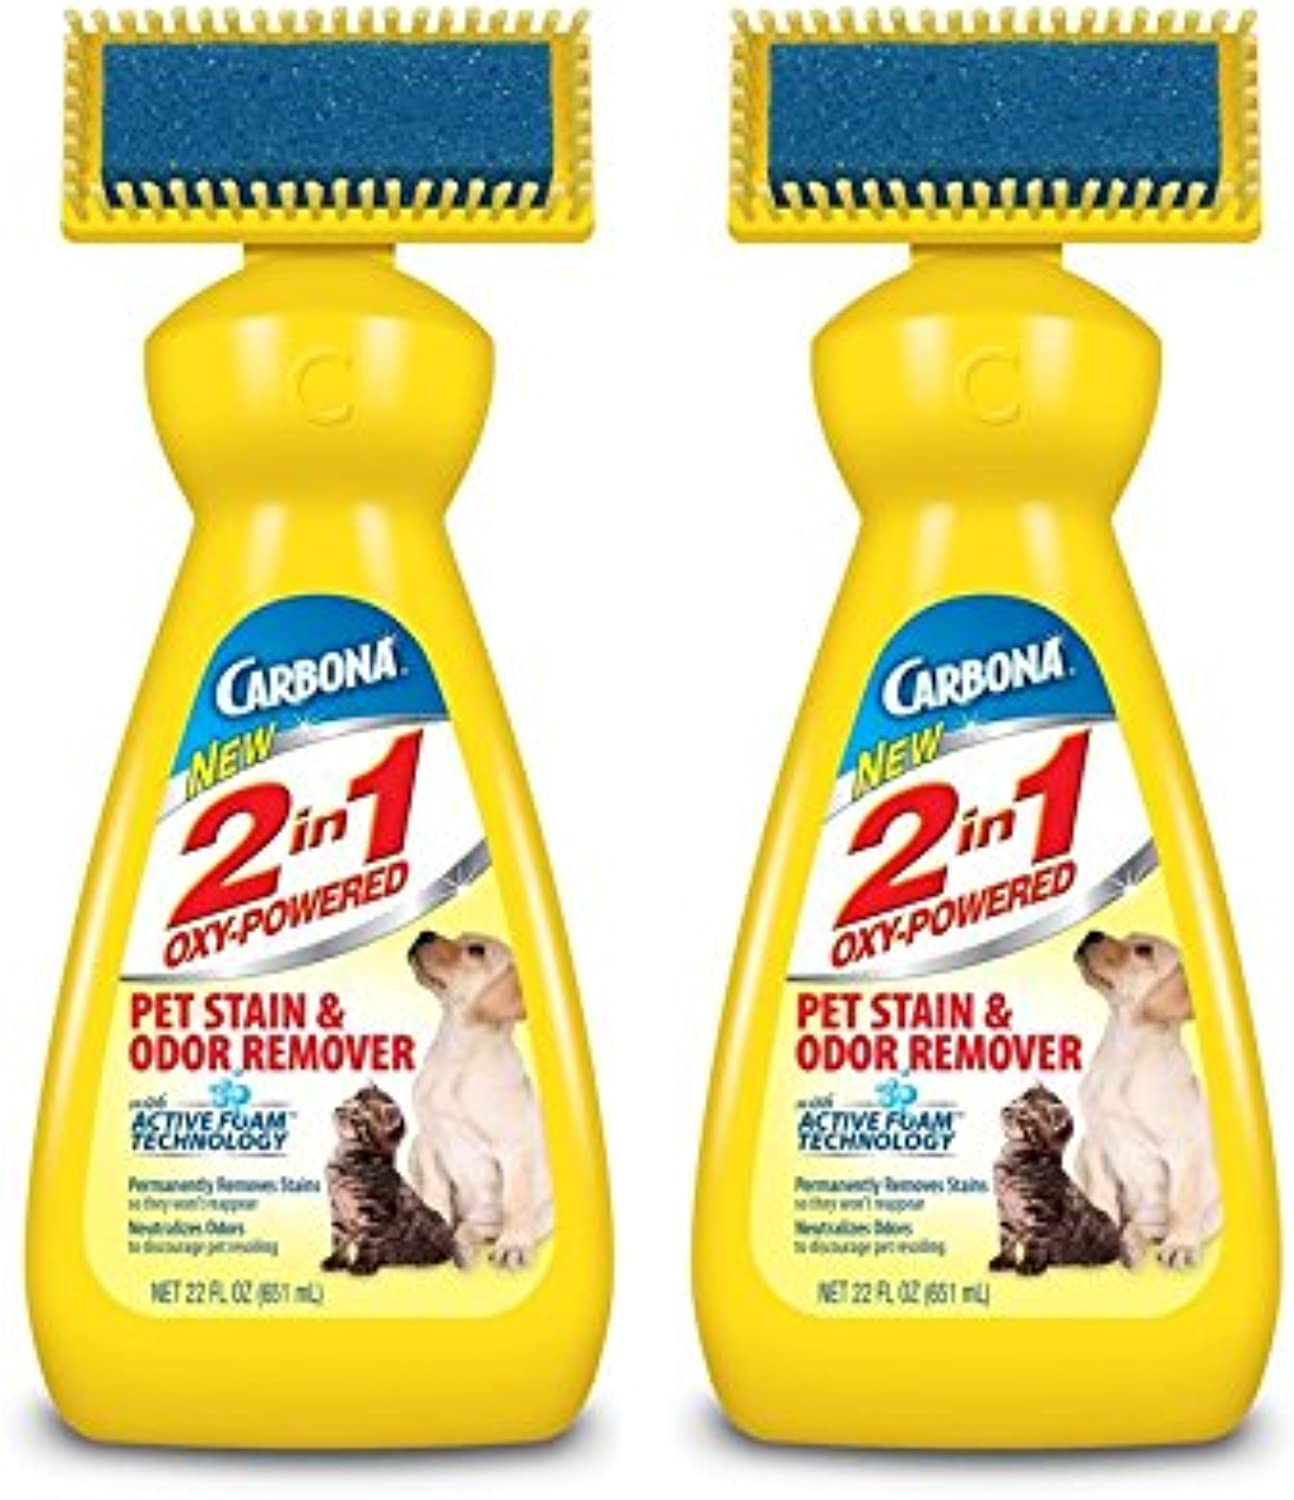 Carbona 2 in 1 OxyPowered Pet Stain, Pack of 2